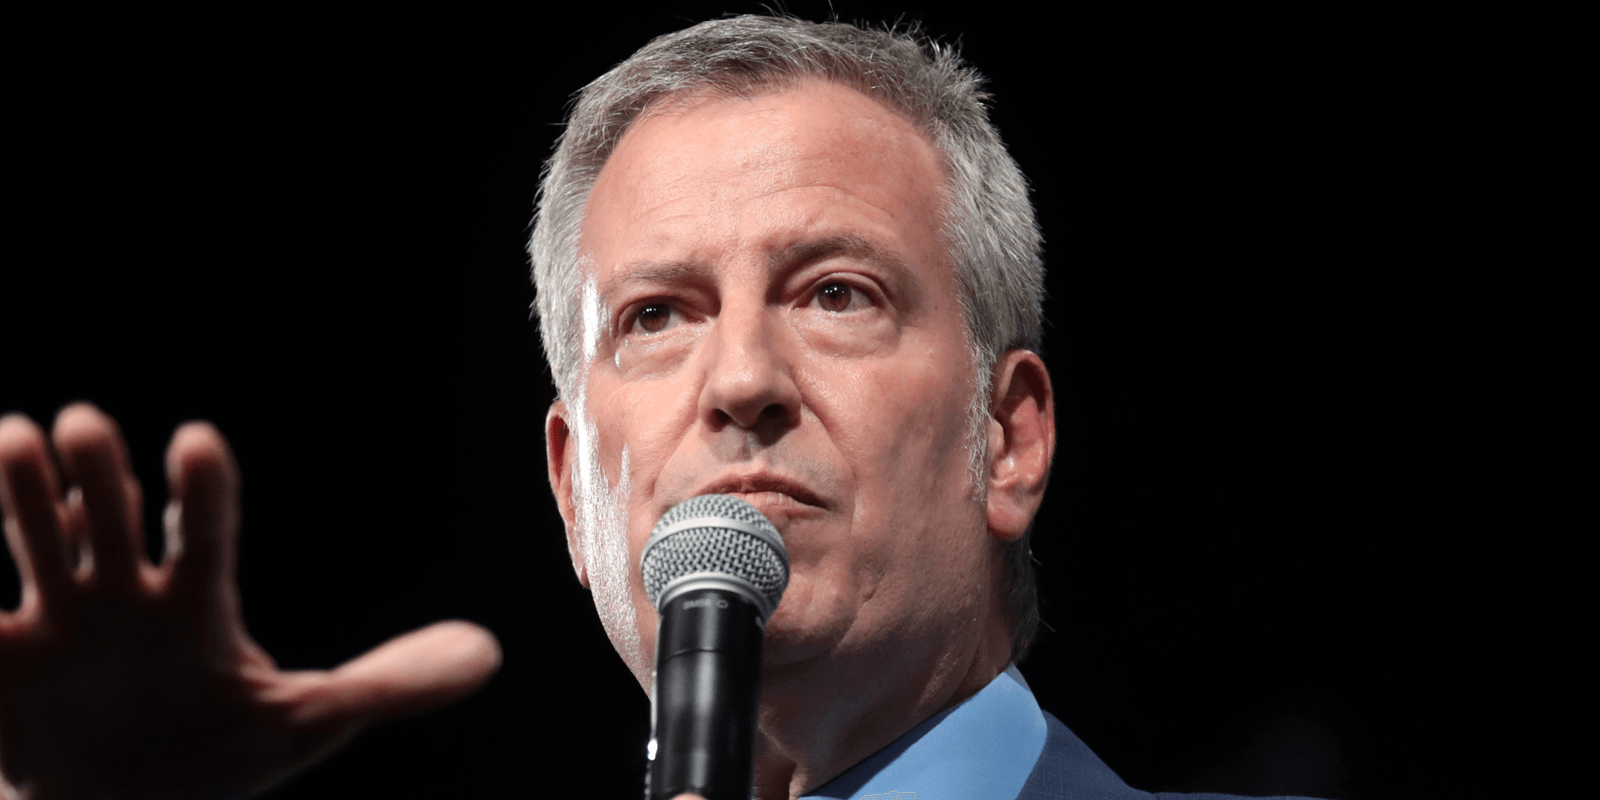 New York City Mayor Bill de Blasio announced on Sunday his intentions to defund the NYPD amid protests following the death of George Floyd.